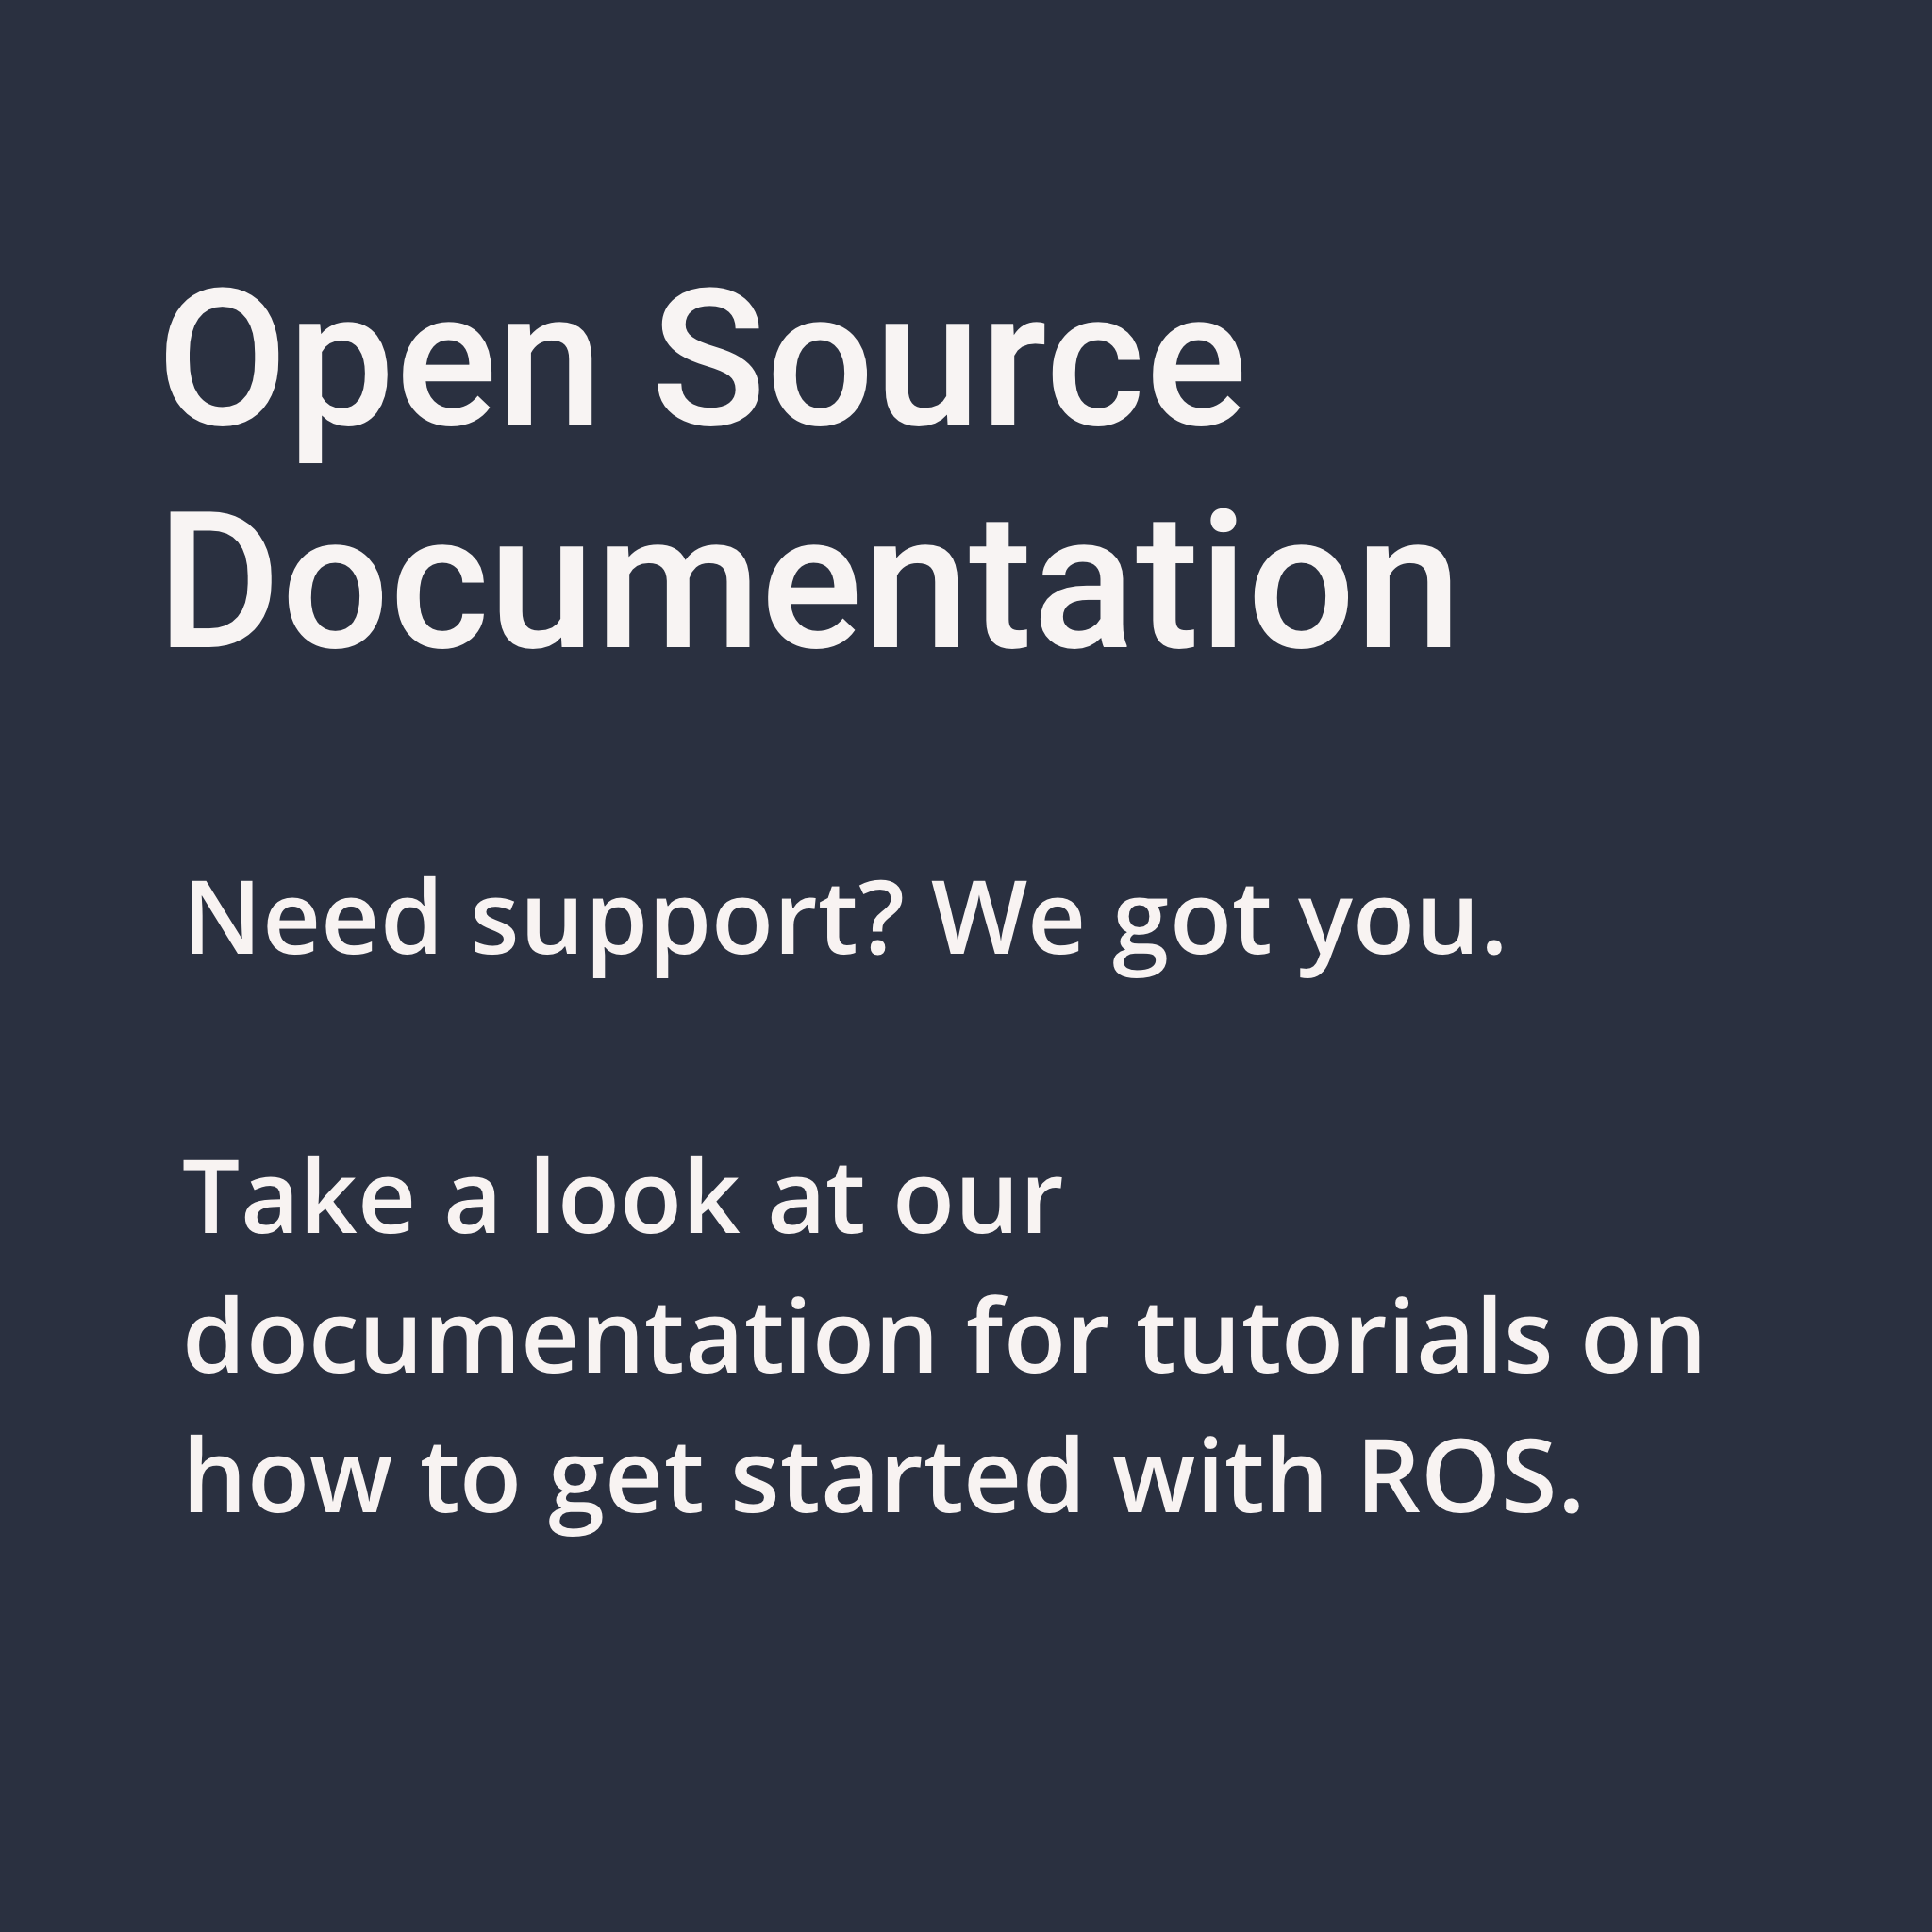 Open source documentation. Need support? we got you. take a look at our documentation for tutorials on how to get started with ROS